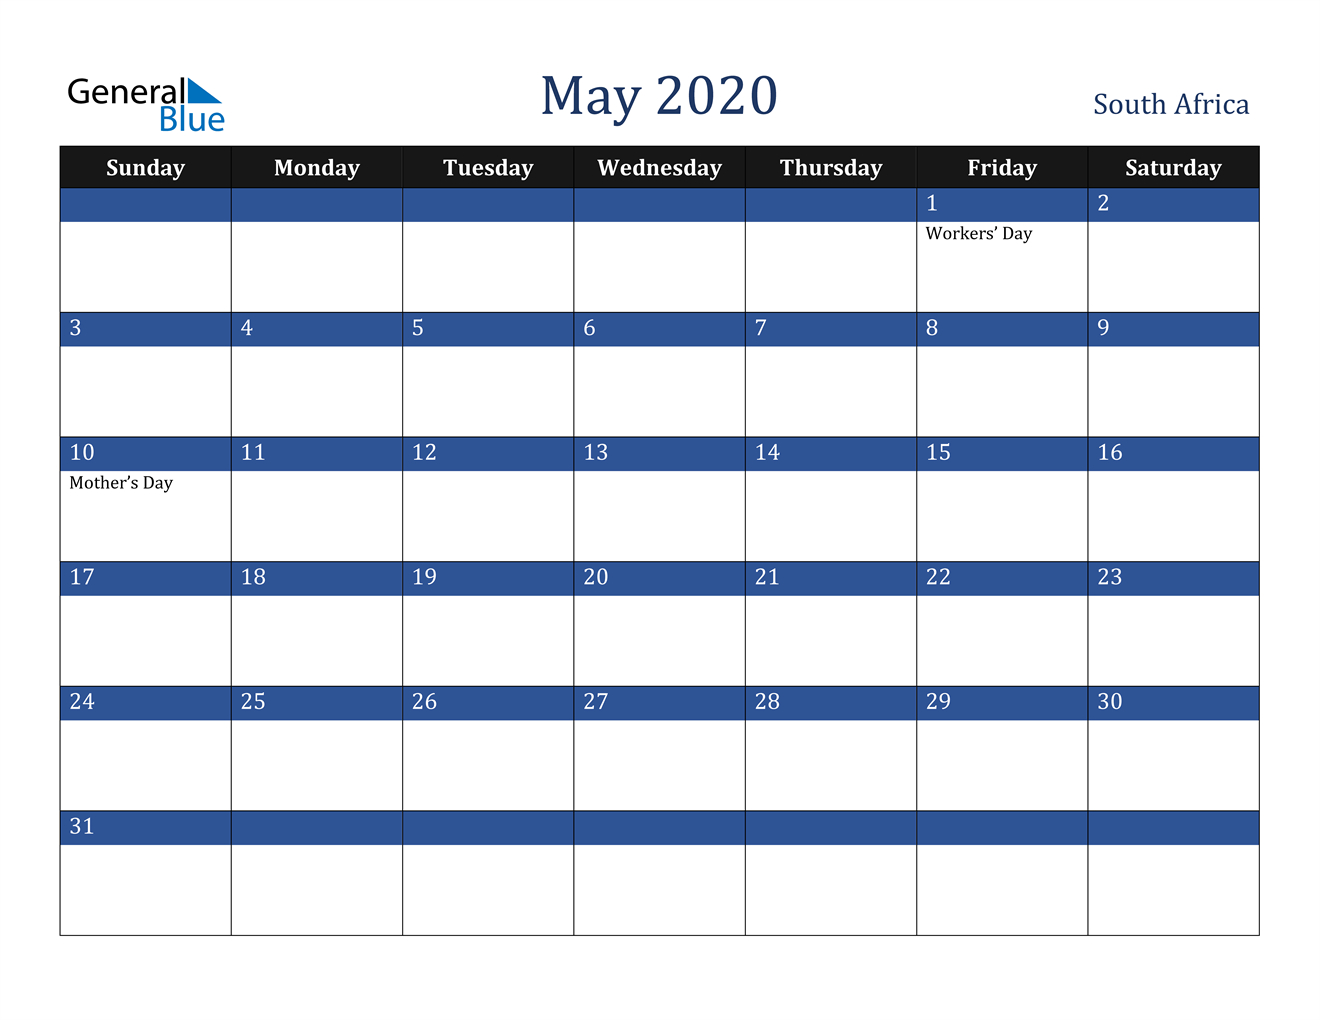 May 2020 Calendar - South Africa